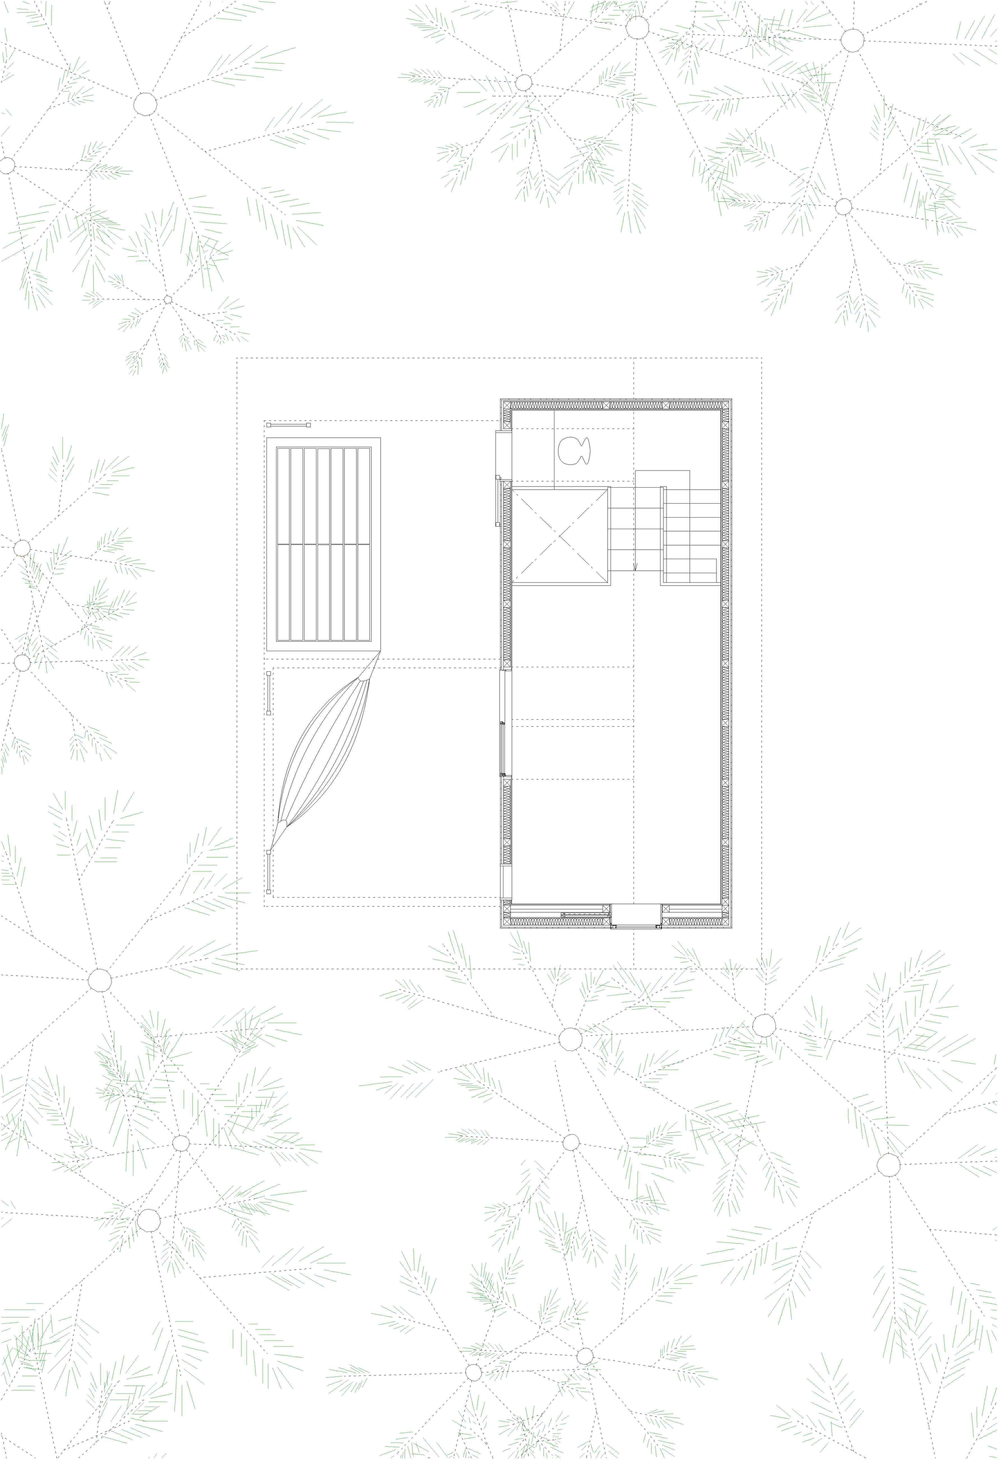 the-tree-mag-villa-in-hakuba-by-naka-architects-120.png